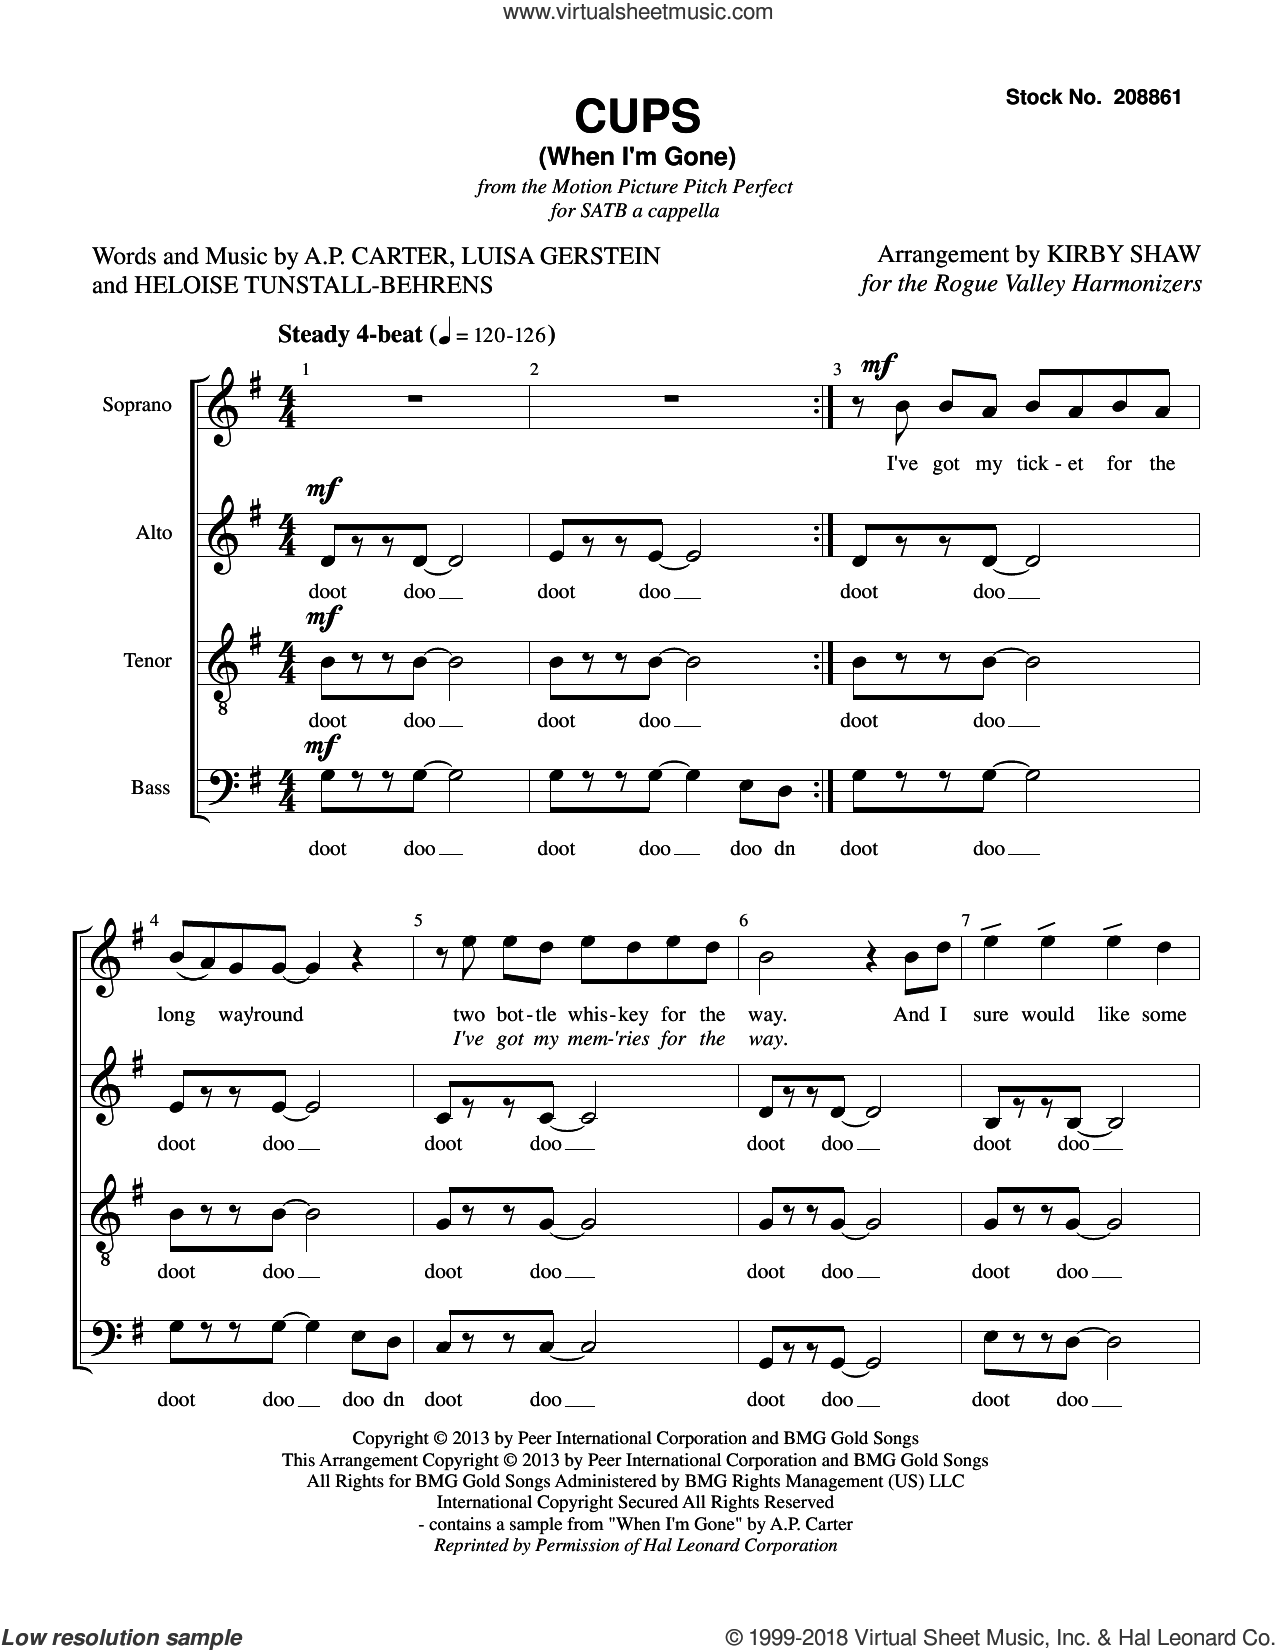 Cups (When I'm Gone) (from Pitch Perfect) (arr. Kirby Shaw) sheet music for choir (SATB: soprano, alto, tenor, bass) by Anna Kendrick, Kirby Shaw, A.P. Carter, Heloise Tunstall-Behrens and Luisa Gerstein, intermediate skill level